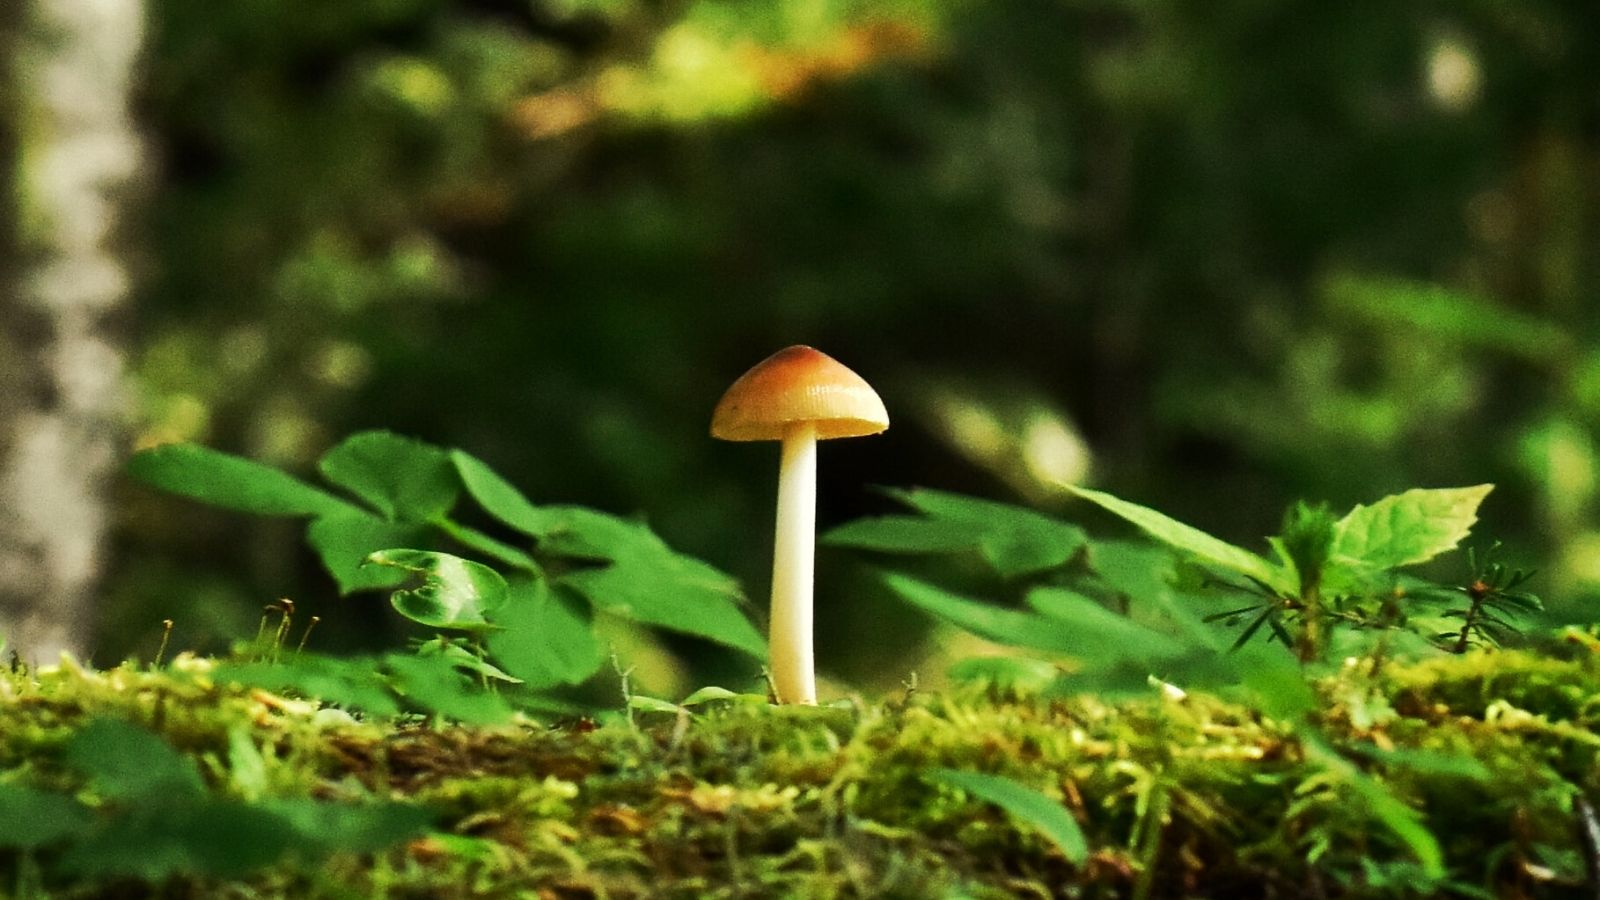 A magic mushroom growing in the forest.